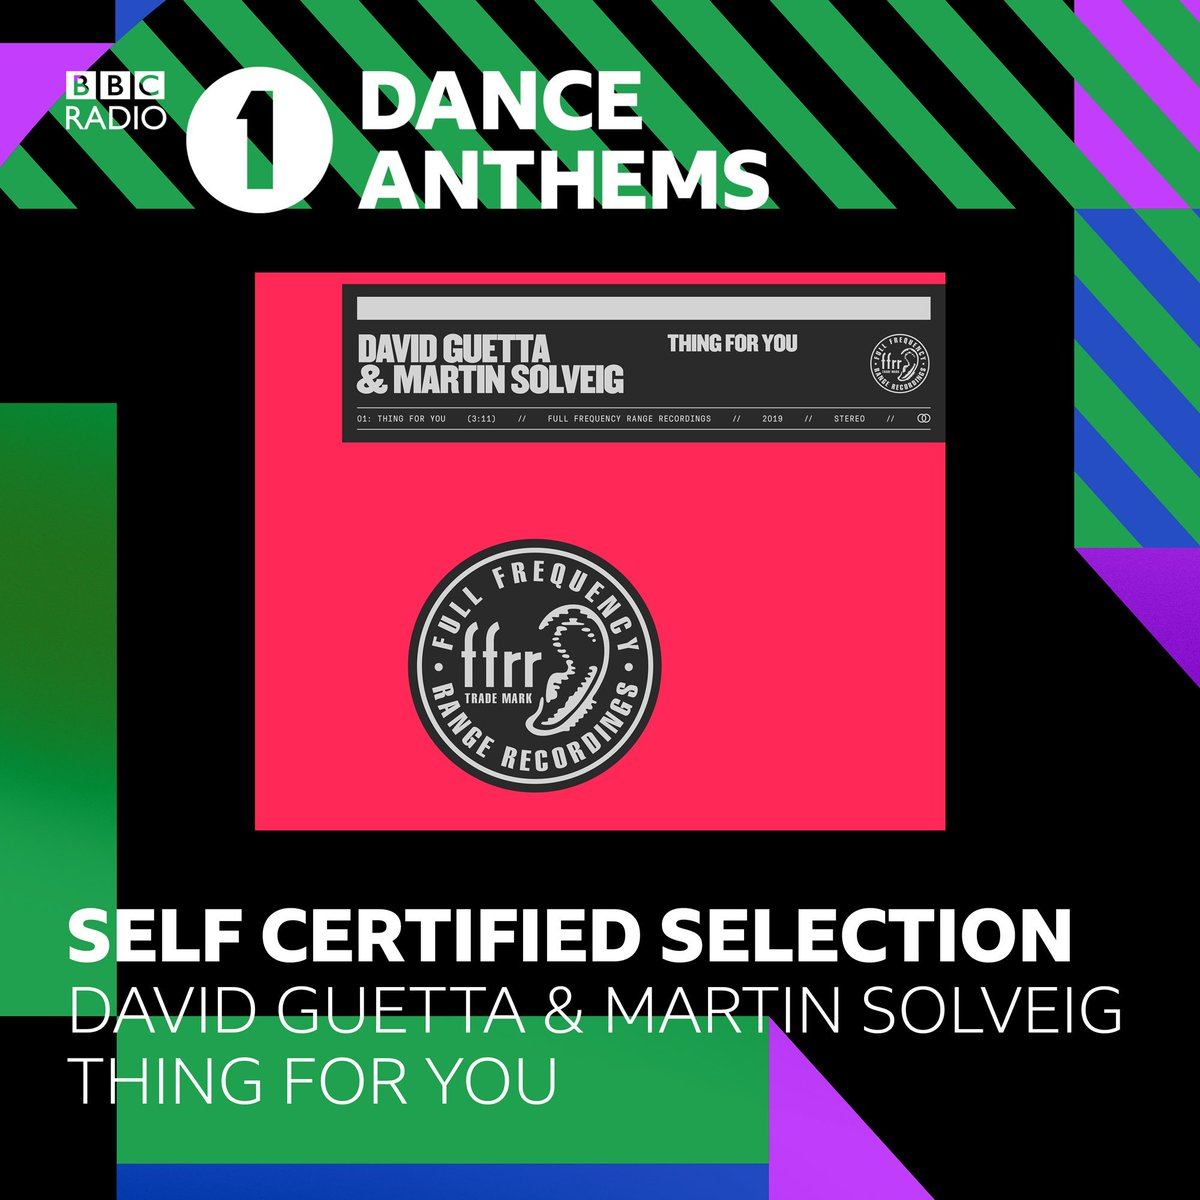 Thanks to @MistaJam for playing 'Thing For You' with @martinsolveig on @bbcradio1 today in Dance Anthems! https://t.co/dDWCz56rmA